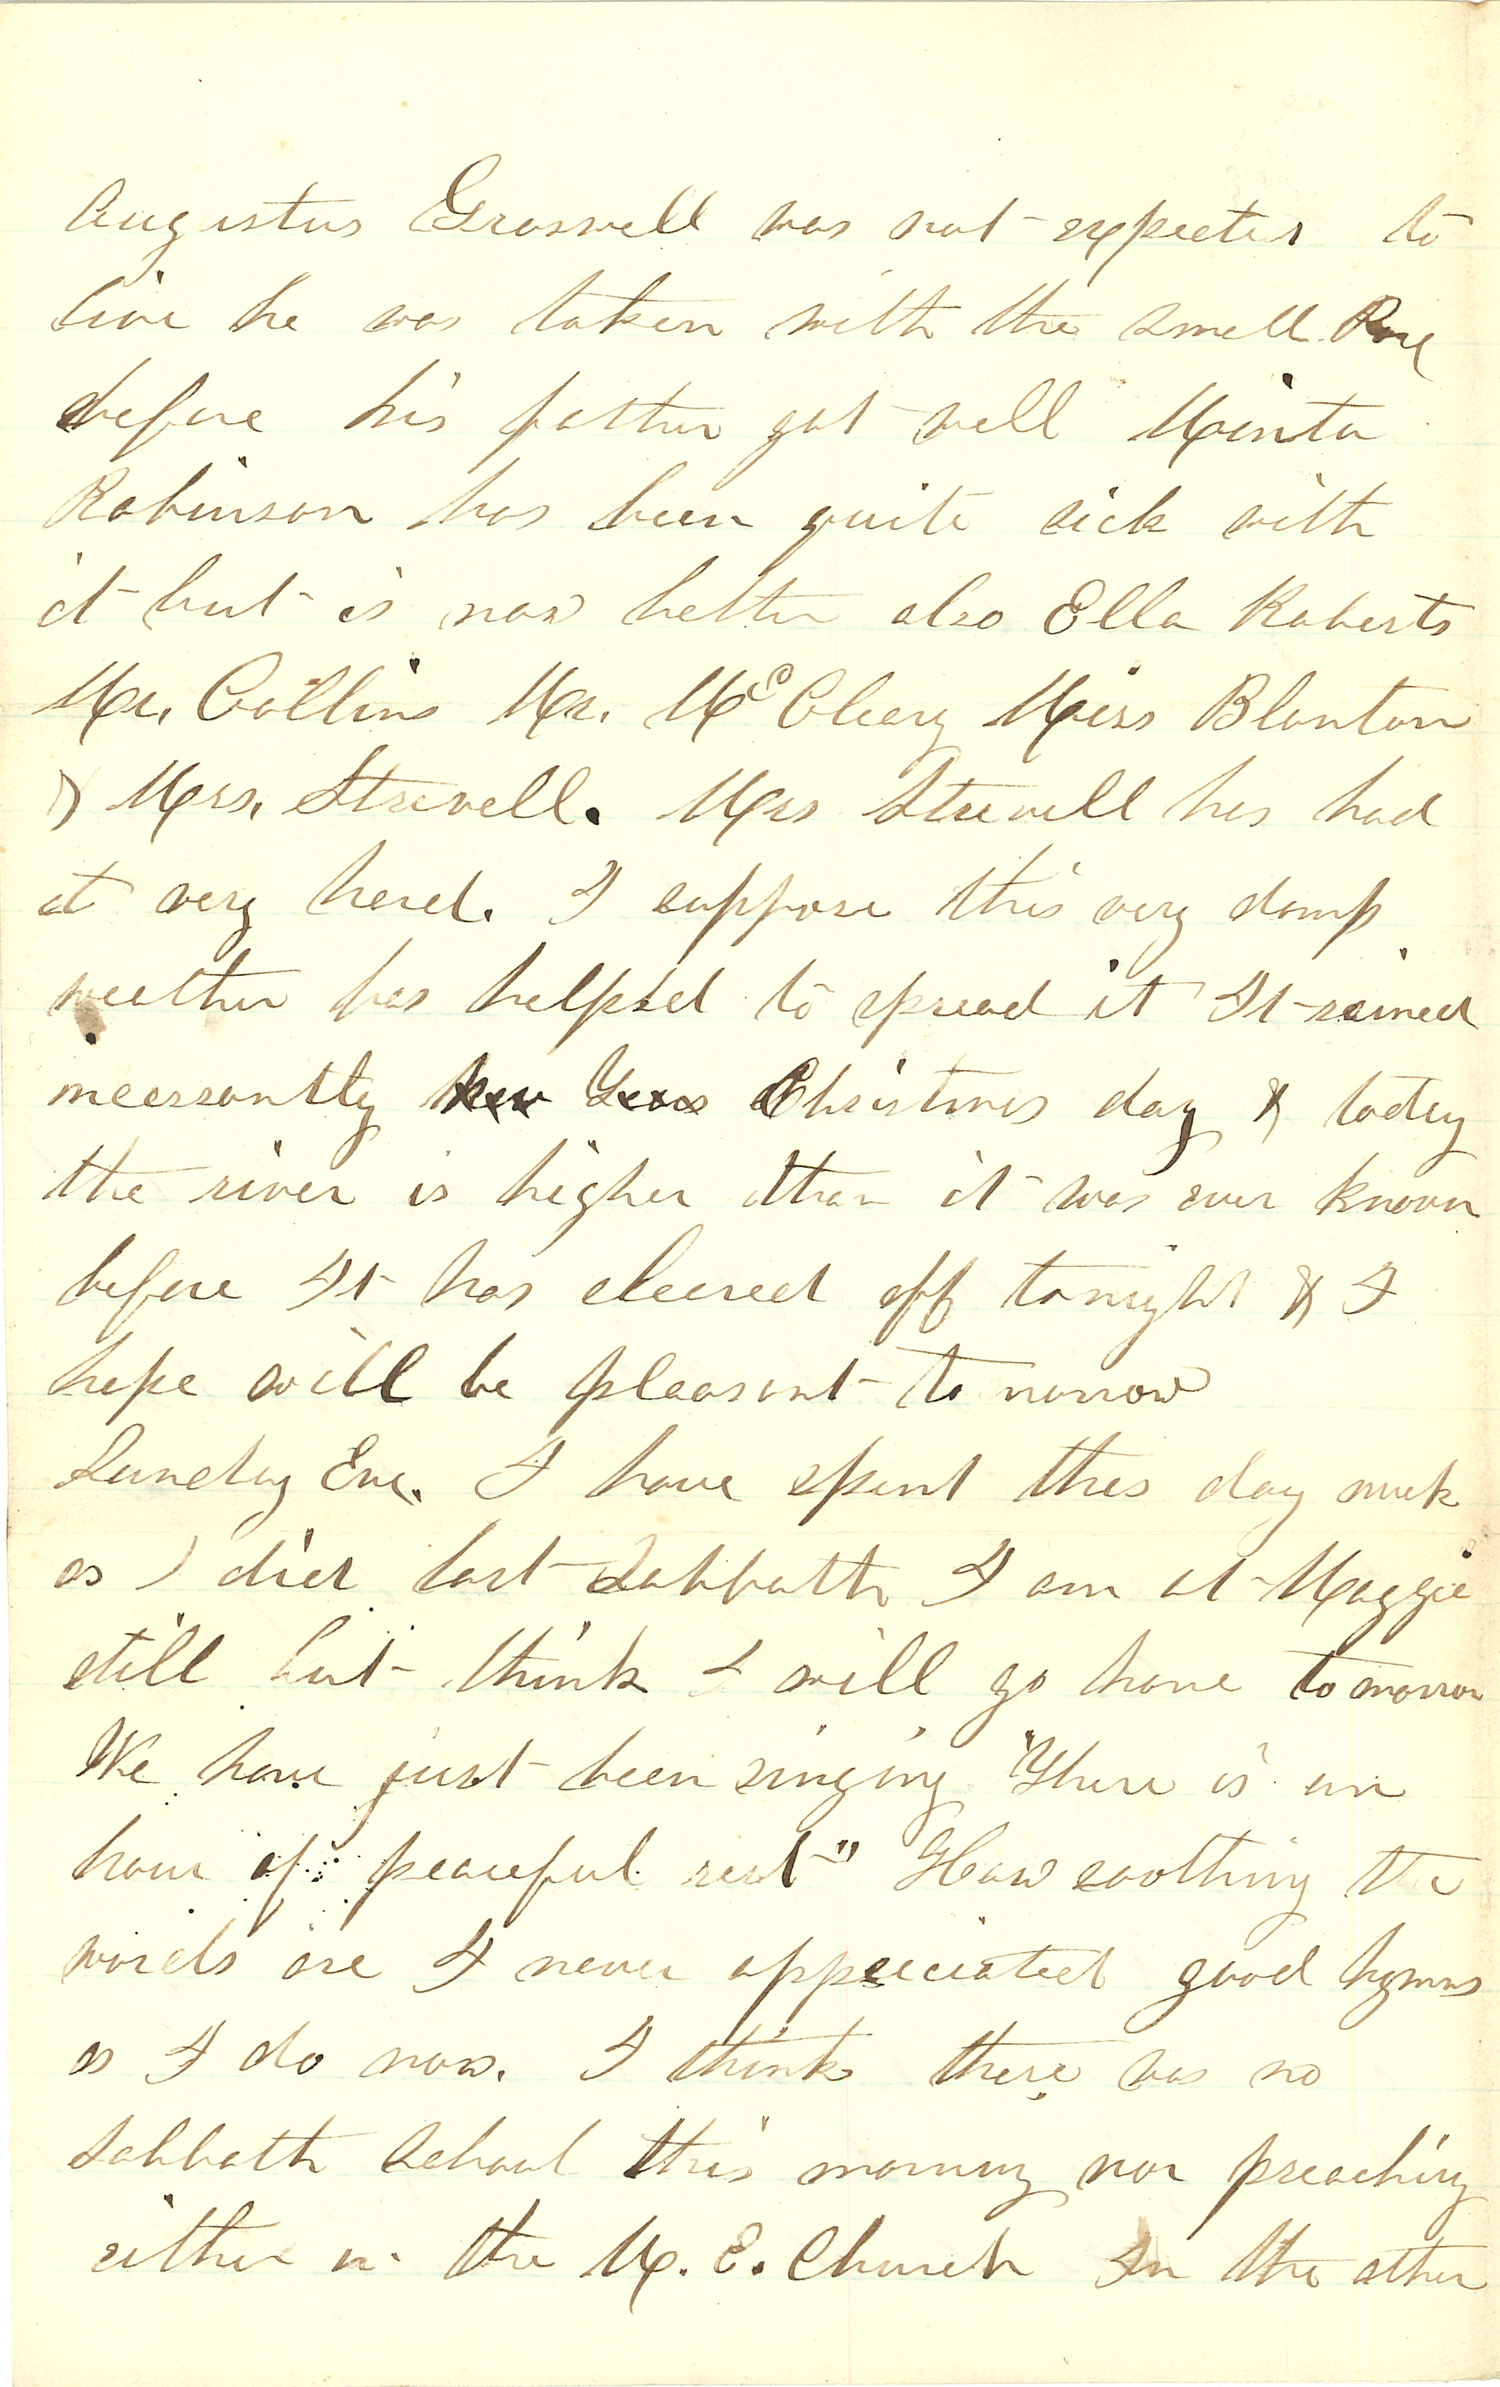 Joseph Culver Letter, December 27, 1862, Page 2